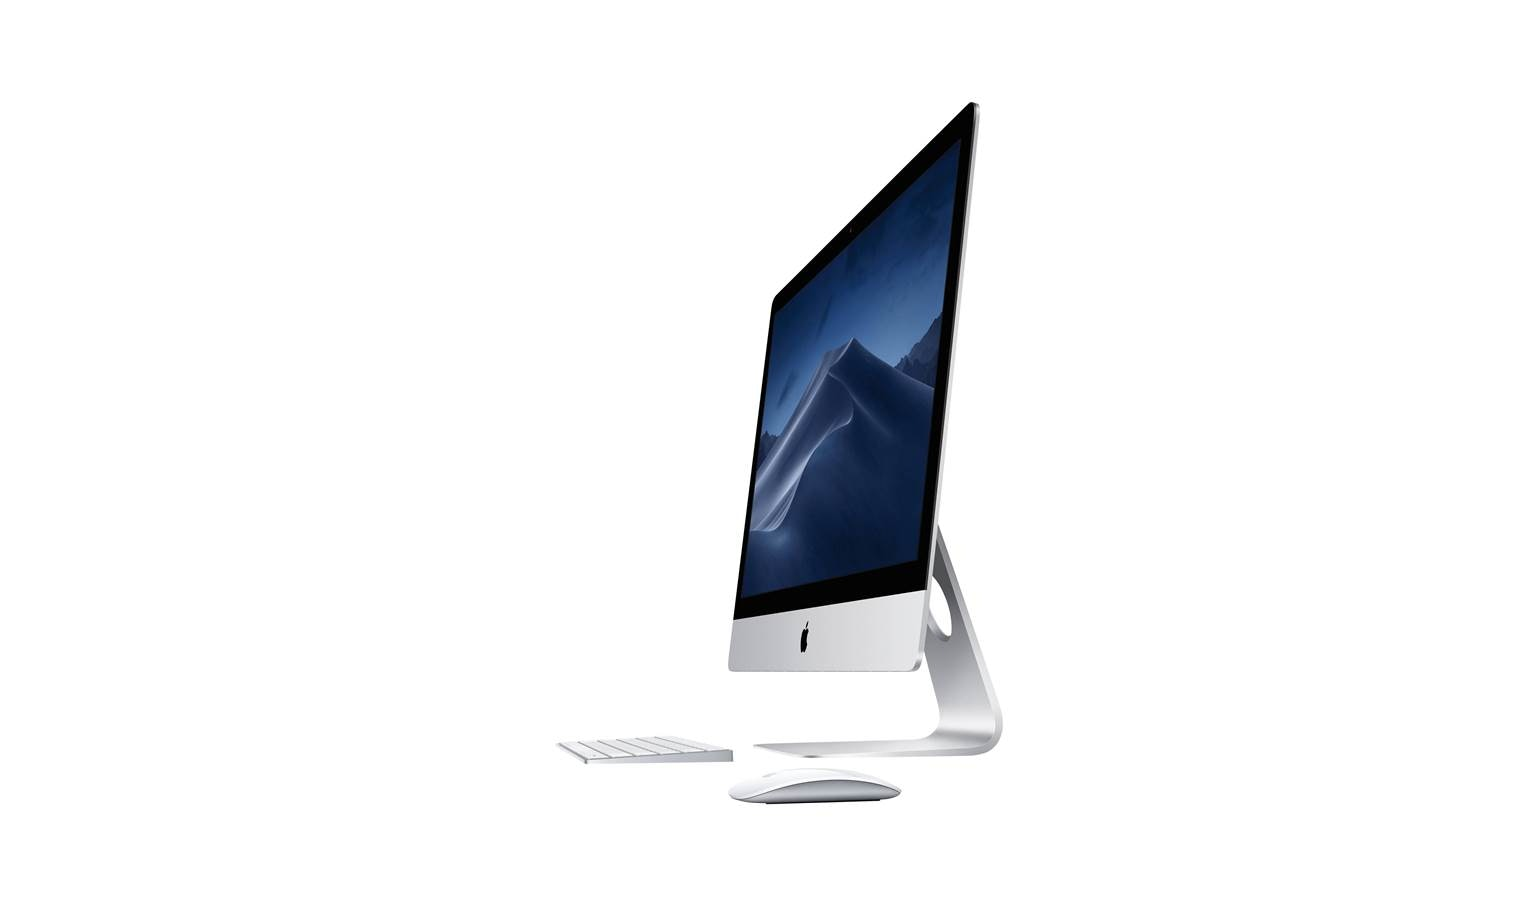 "Apple iMac 27.0"" 3.7 GHz with Retina 4K Display (Overview)"